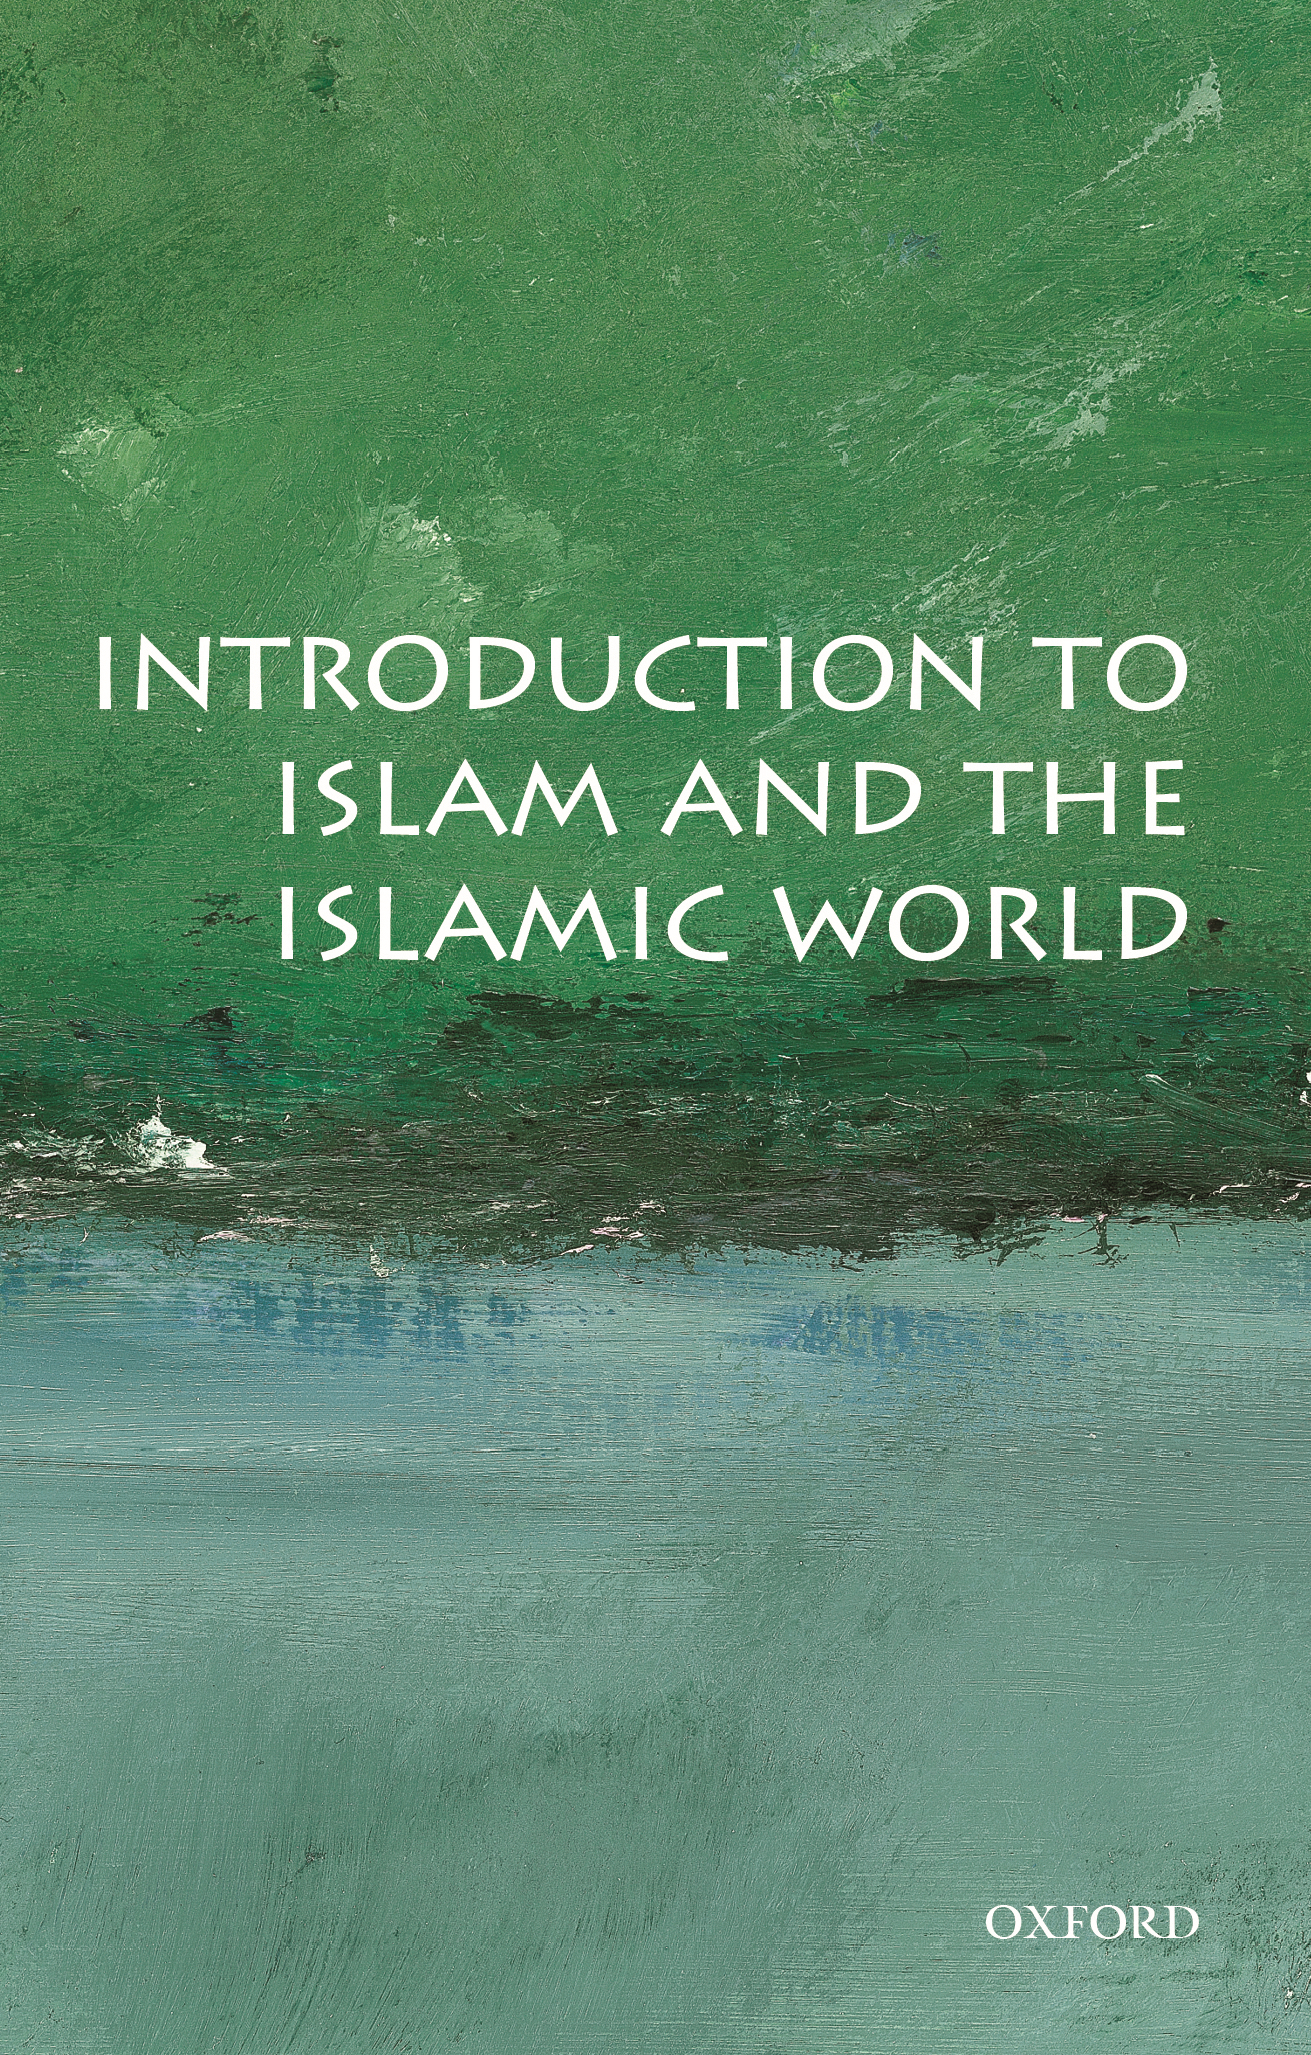 Introduction to Islam and the Islamic World